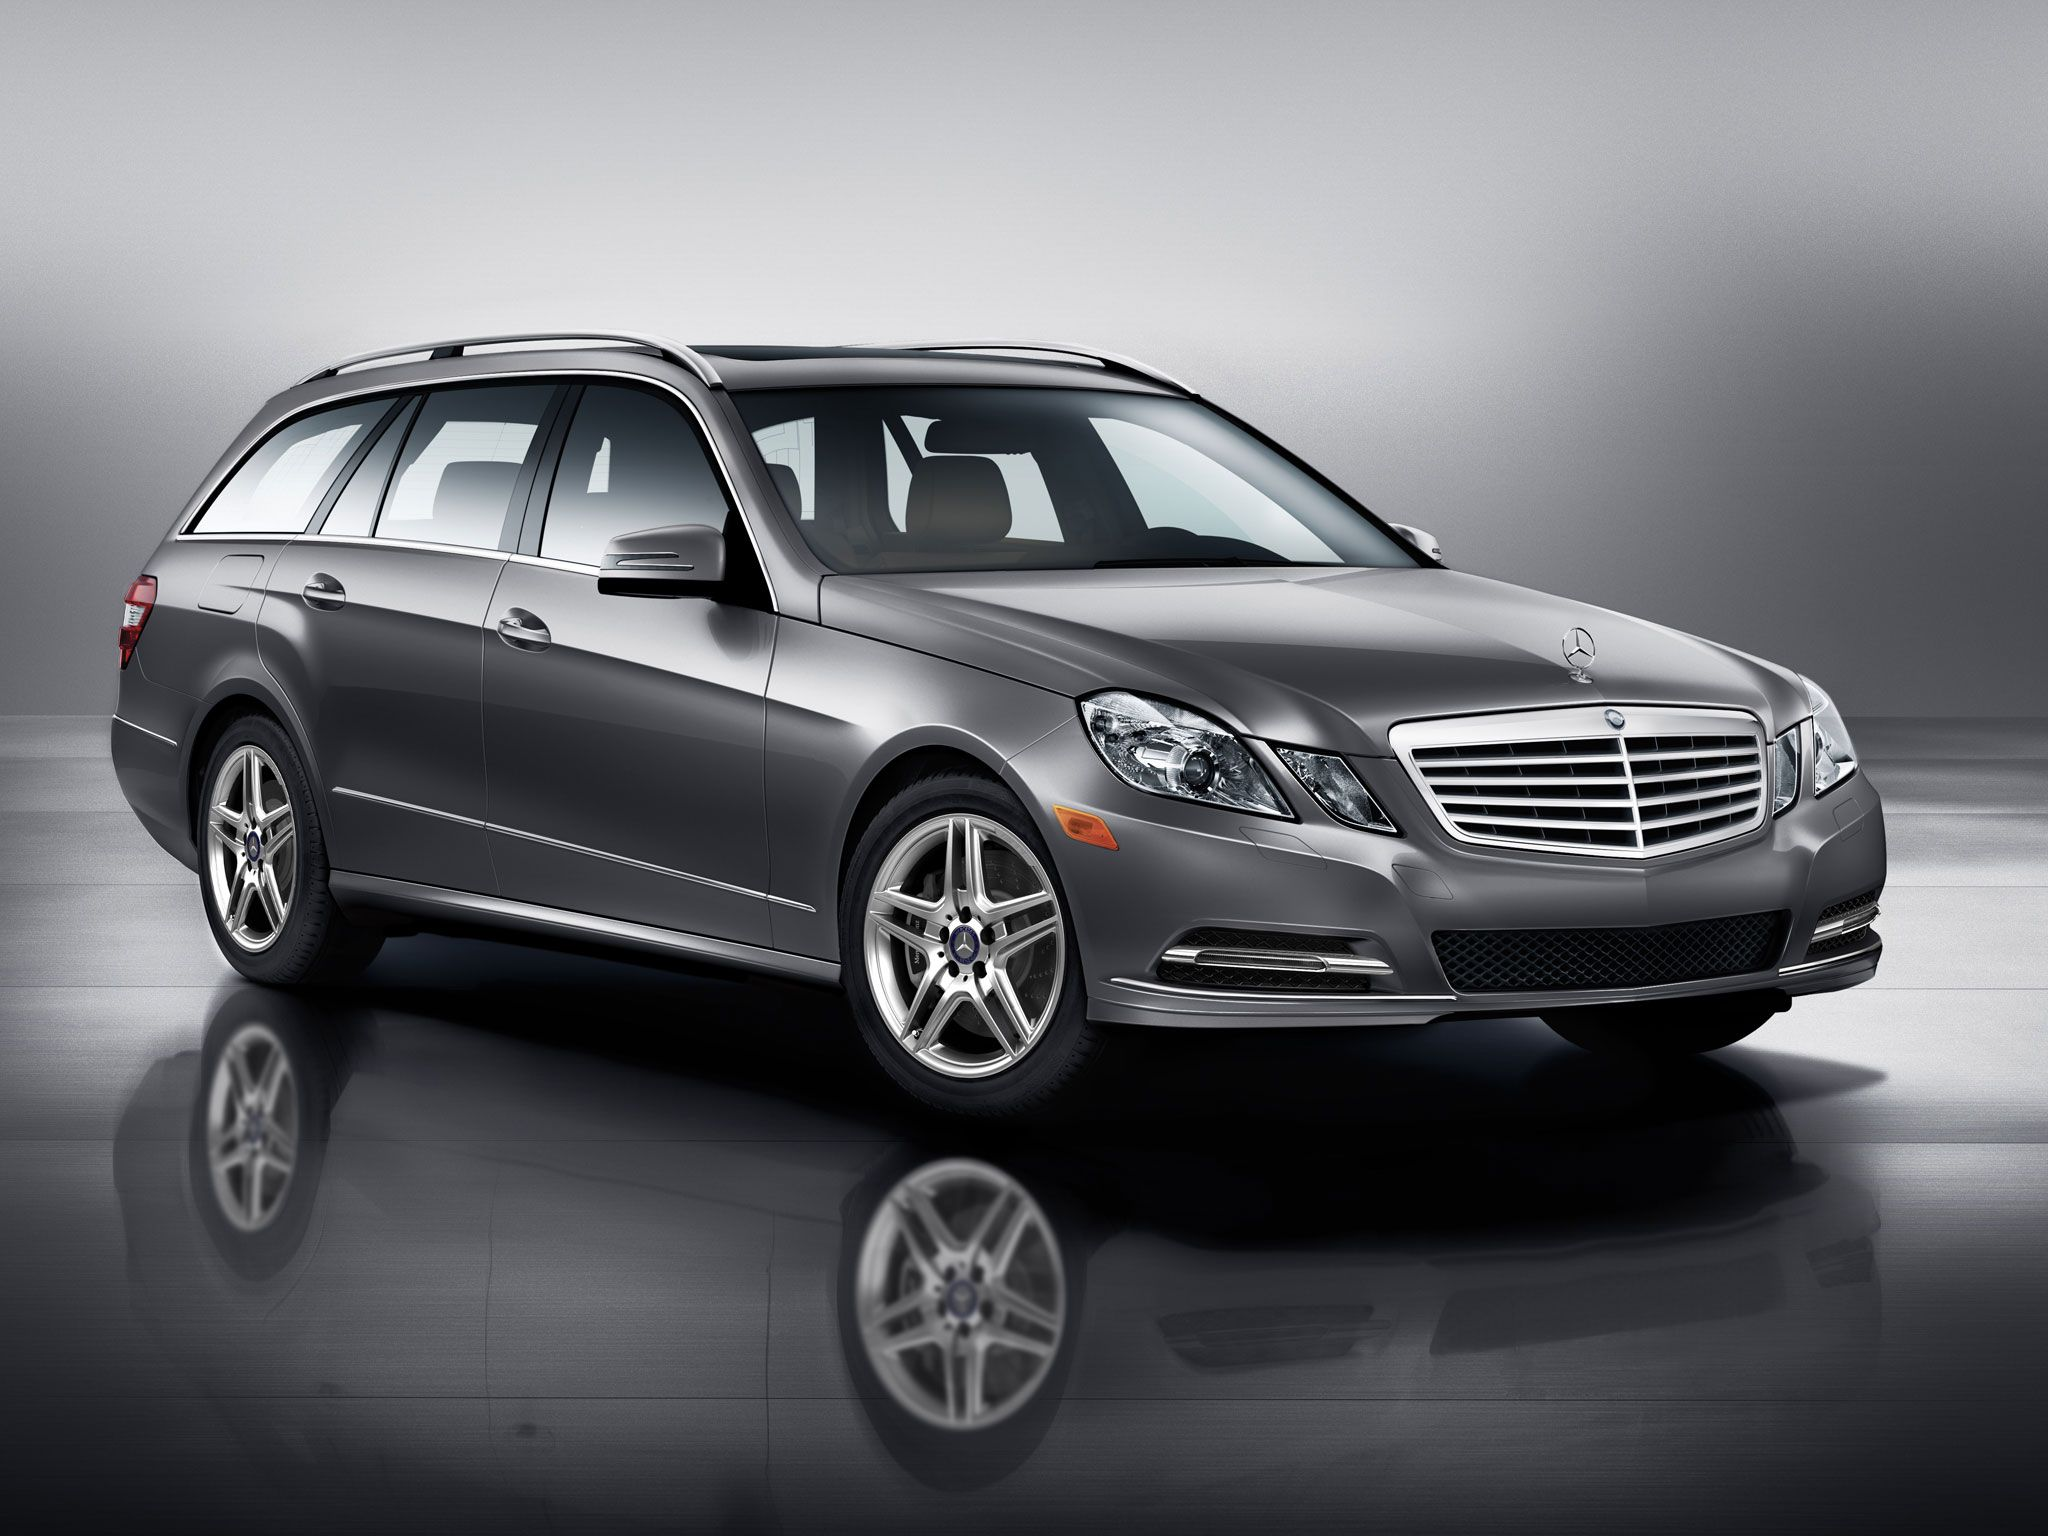 Sports Cars Luxury Cars And Vehicles From Mercedes Benz Mercedes Benz Mercedes Benz Cars Benz Wagon Cars